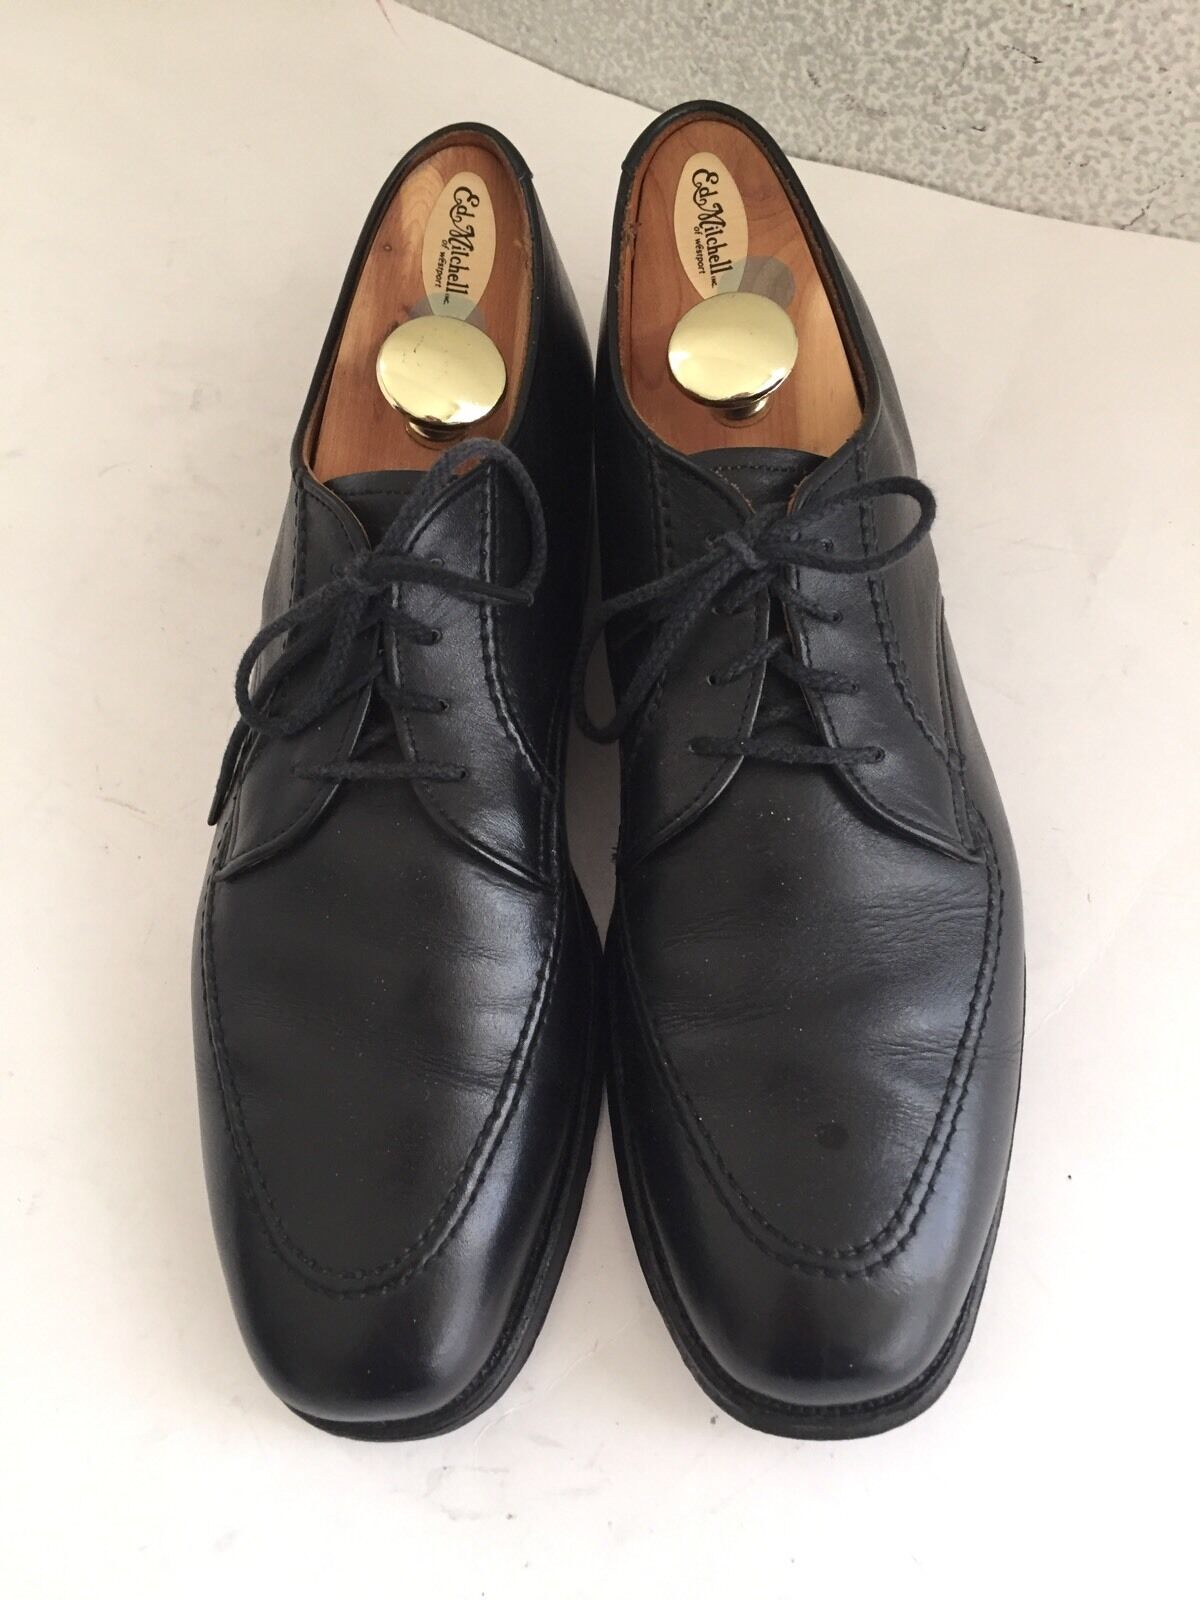 Alden Classic 4 Eyelet Moc Toe bluecher  Oxfords  11 A Made In The USA